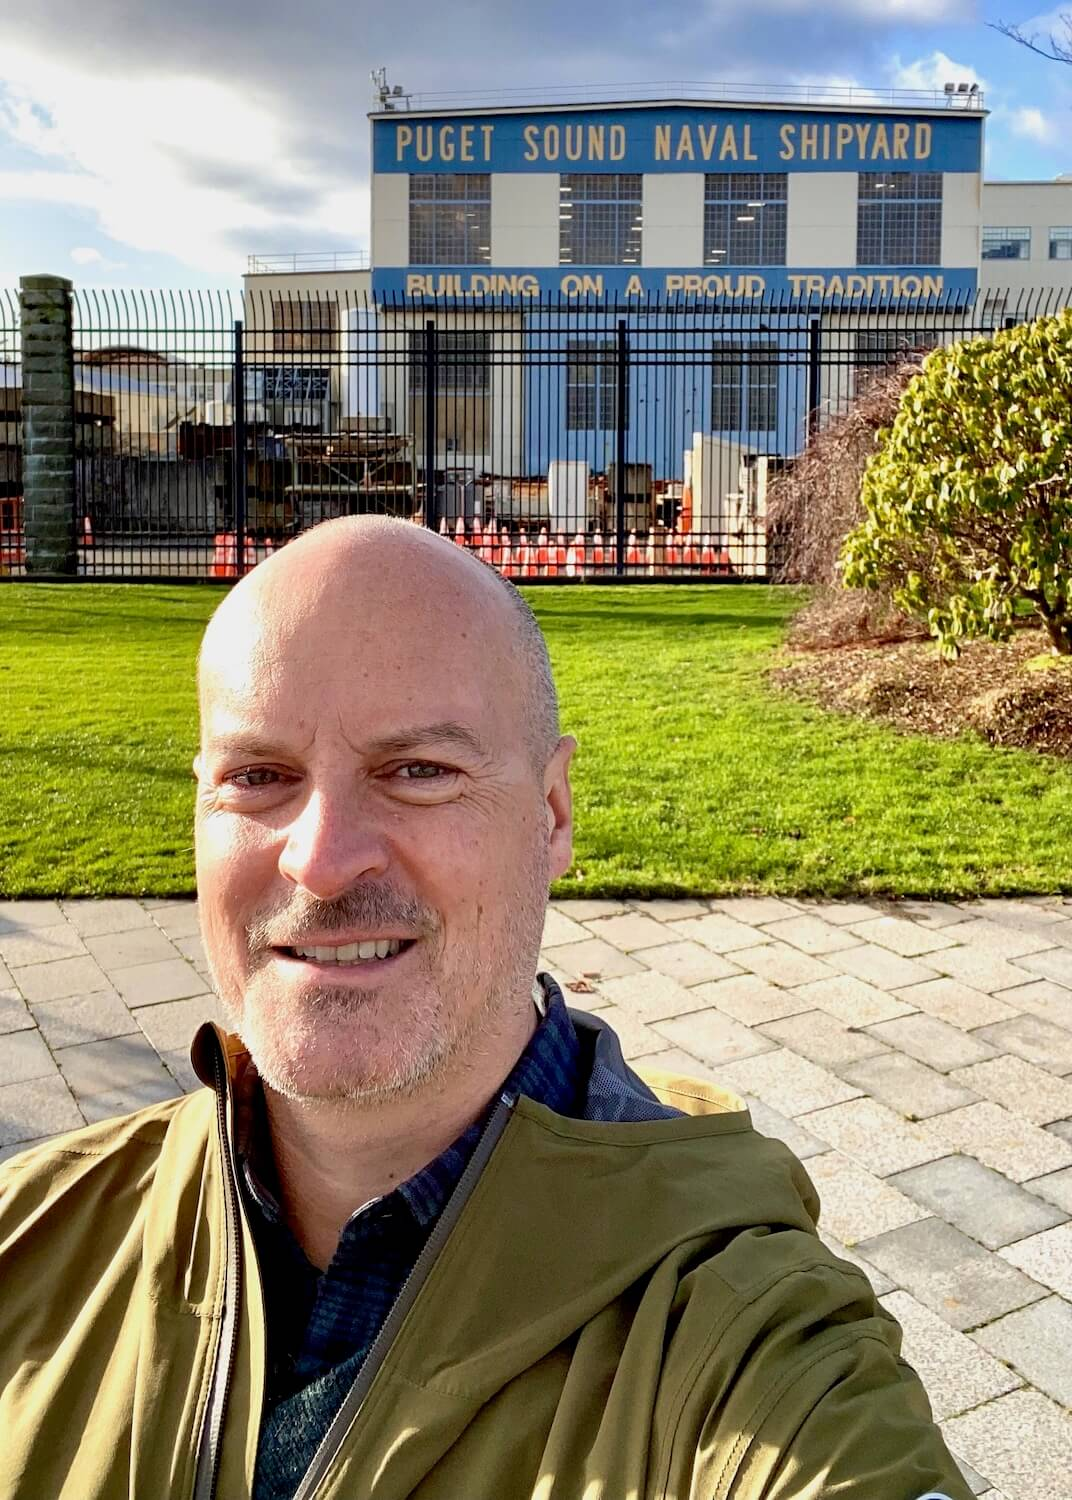 A selfie of Matthew Kessi in front of the Puget Sound Naval Shipyard in Bremerton, Washginton.  The grass is green in the background in front of a black iron grate fence leading to the industrial area.